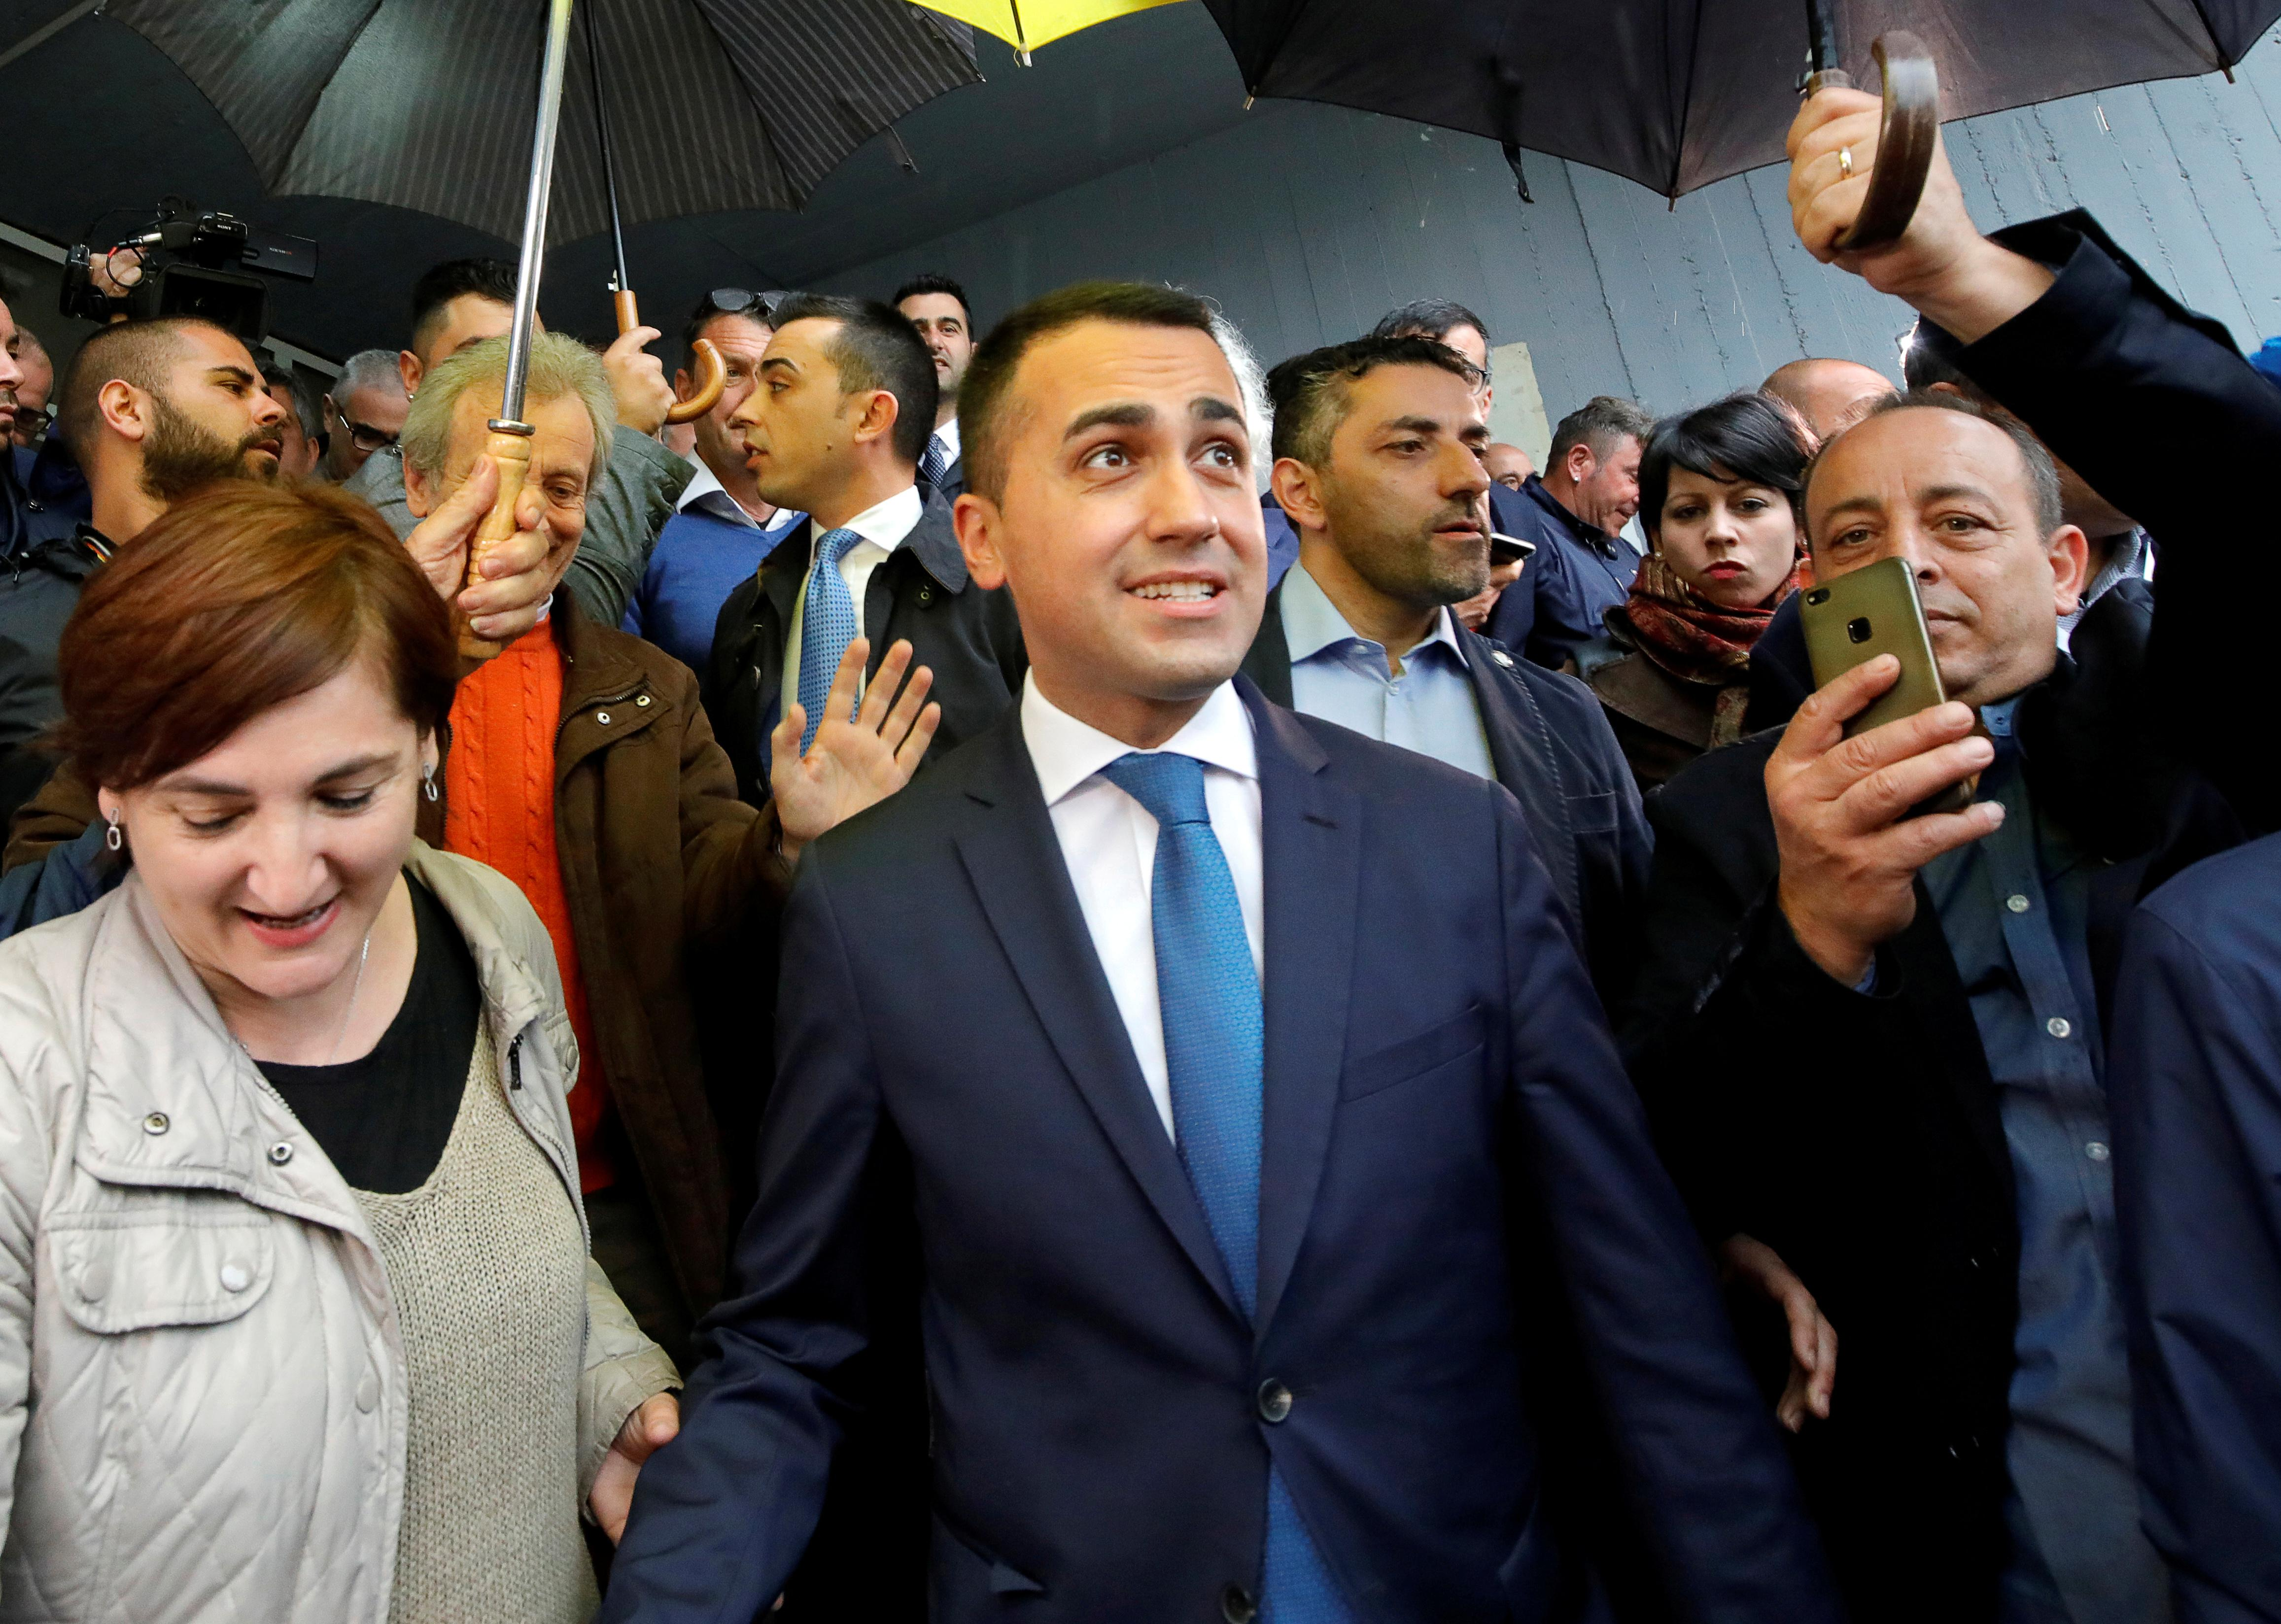 Italy's 5-Star backs Di Maio to carry on as leader after EU vote defeat